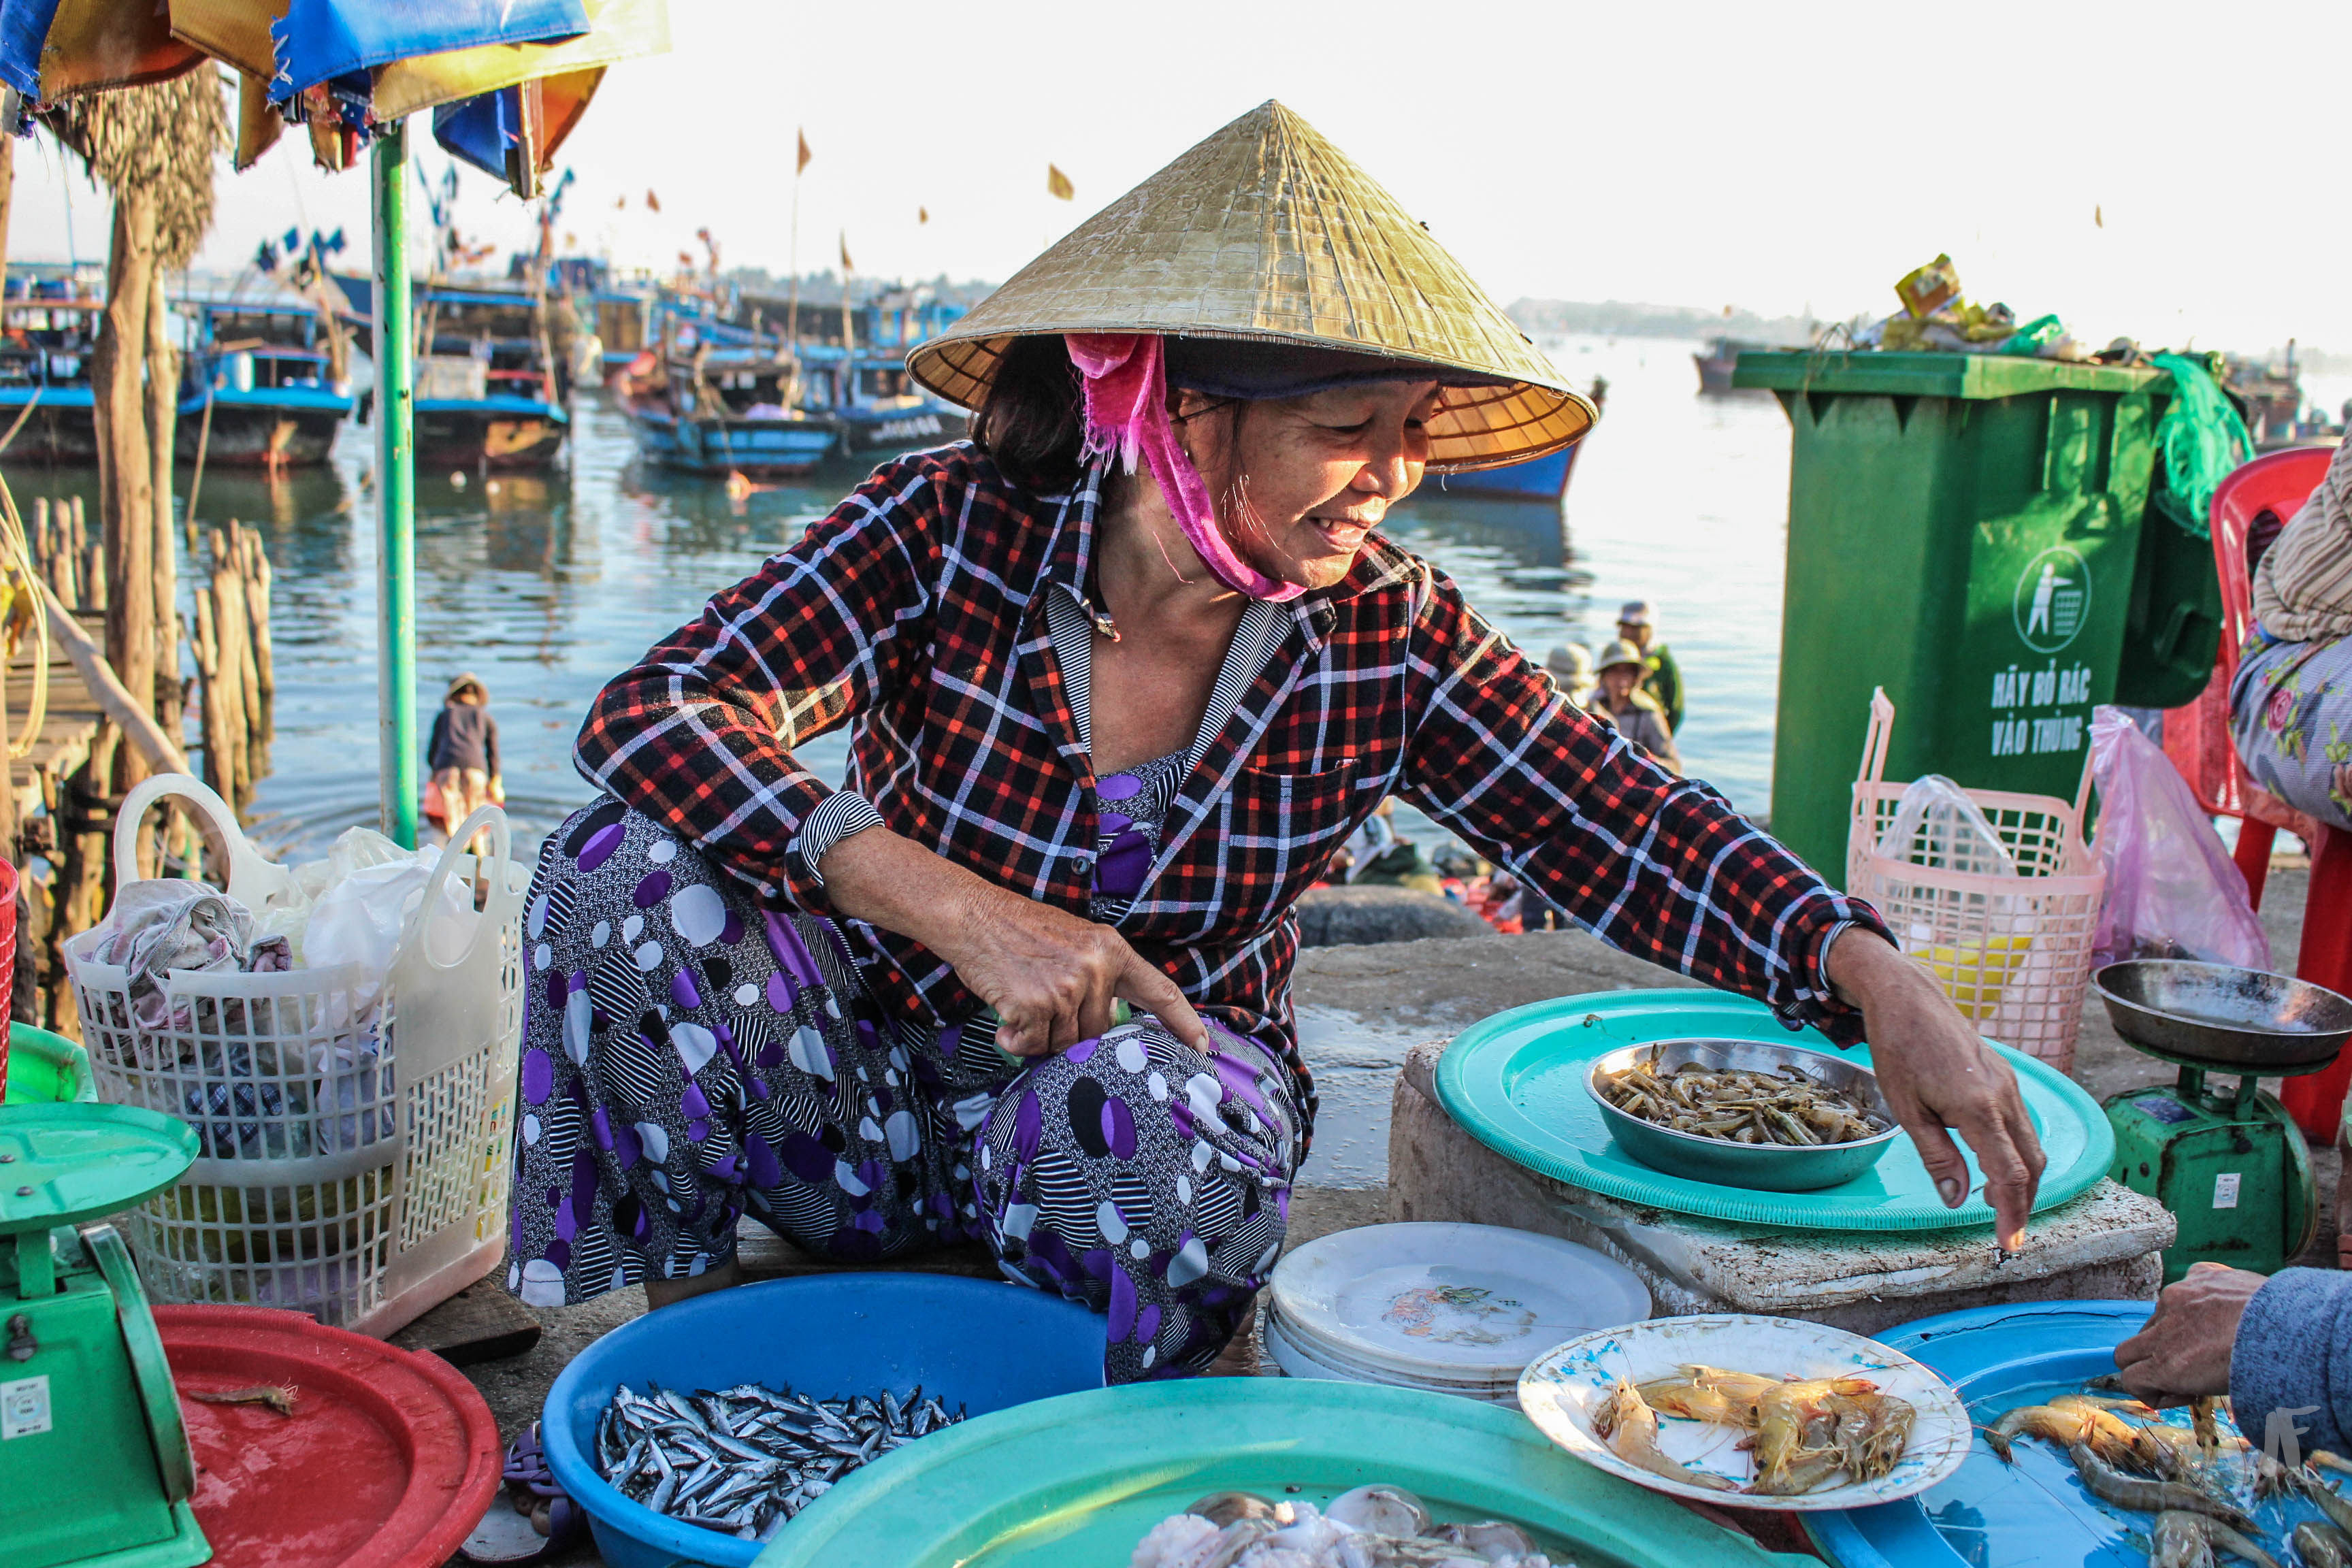 Sunrise at the Fish Market in Hoi An